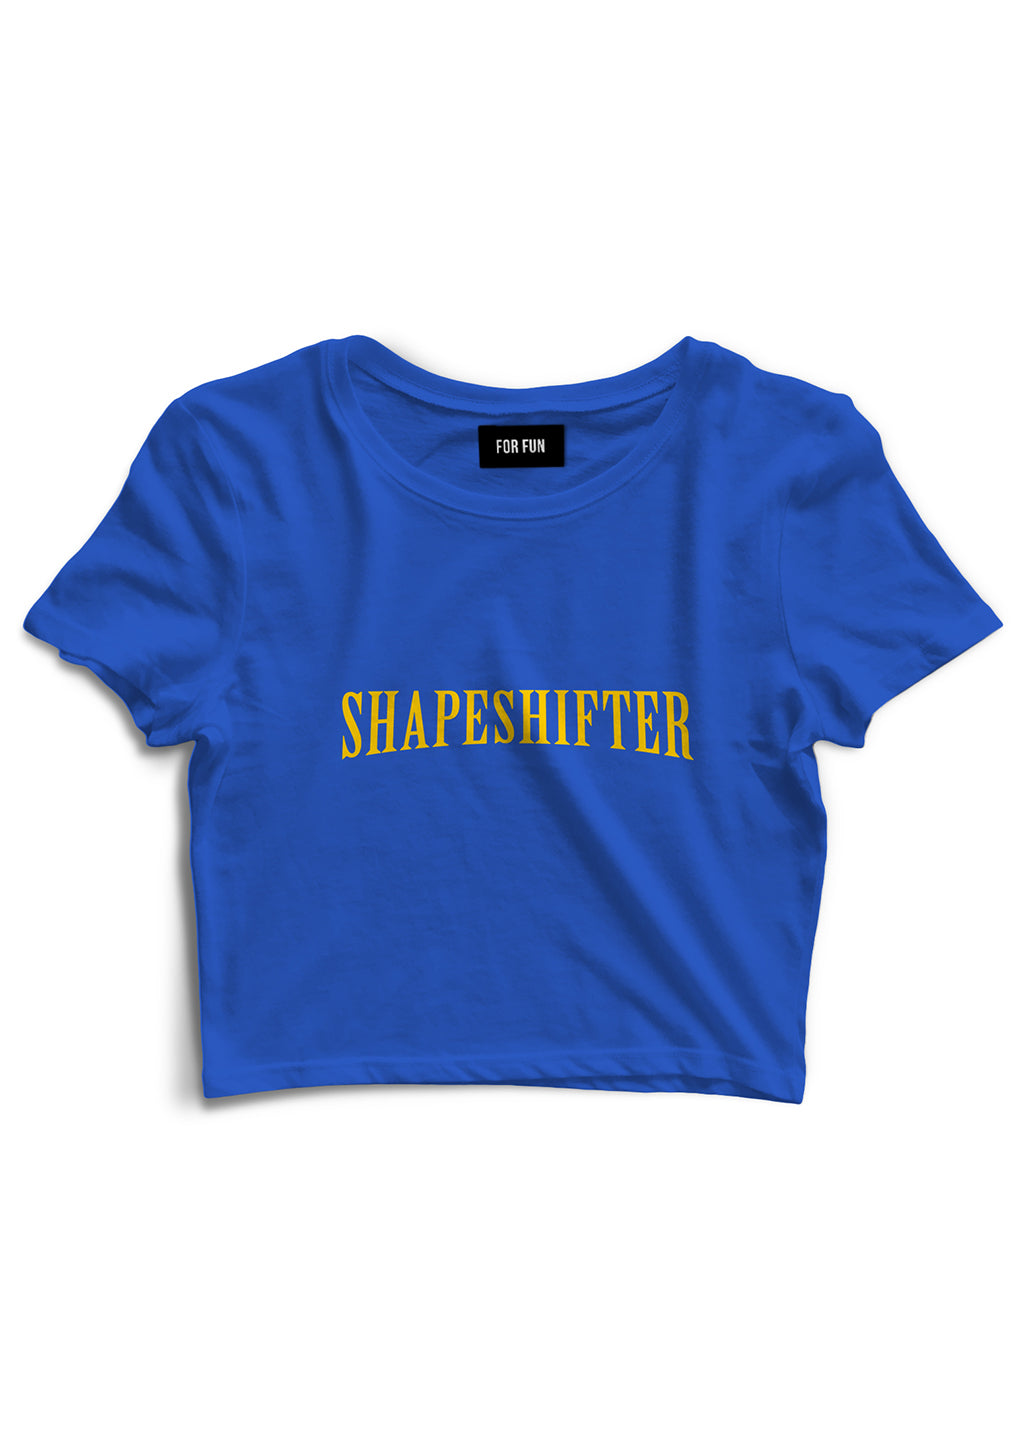 Shapeshifter / Crop Top (Blue)